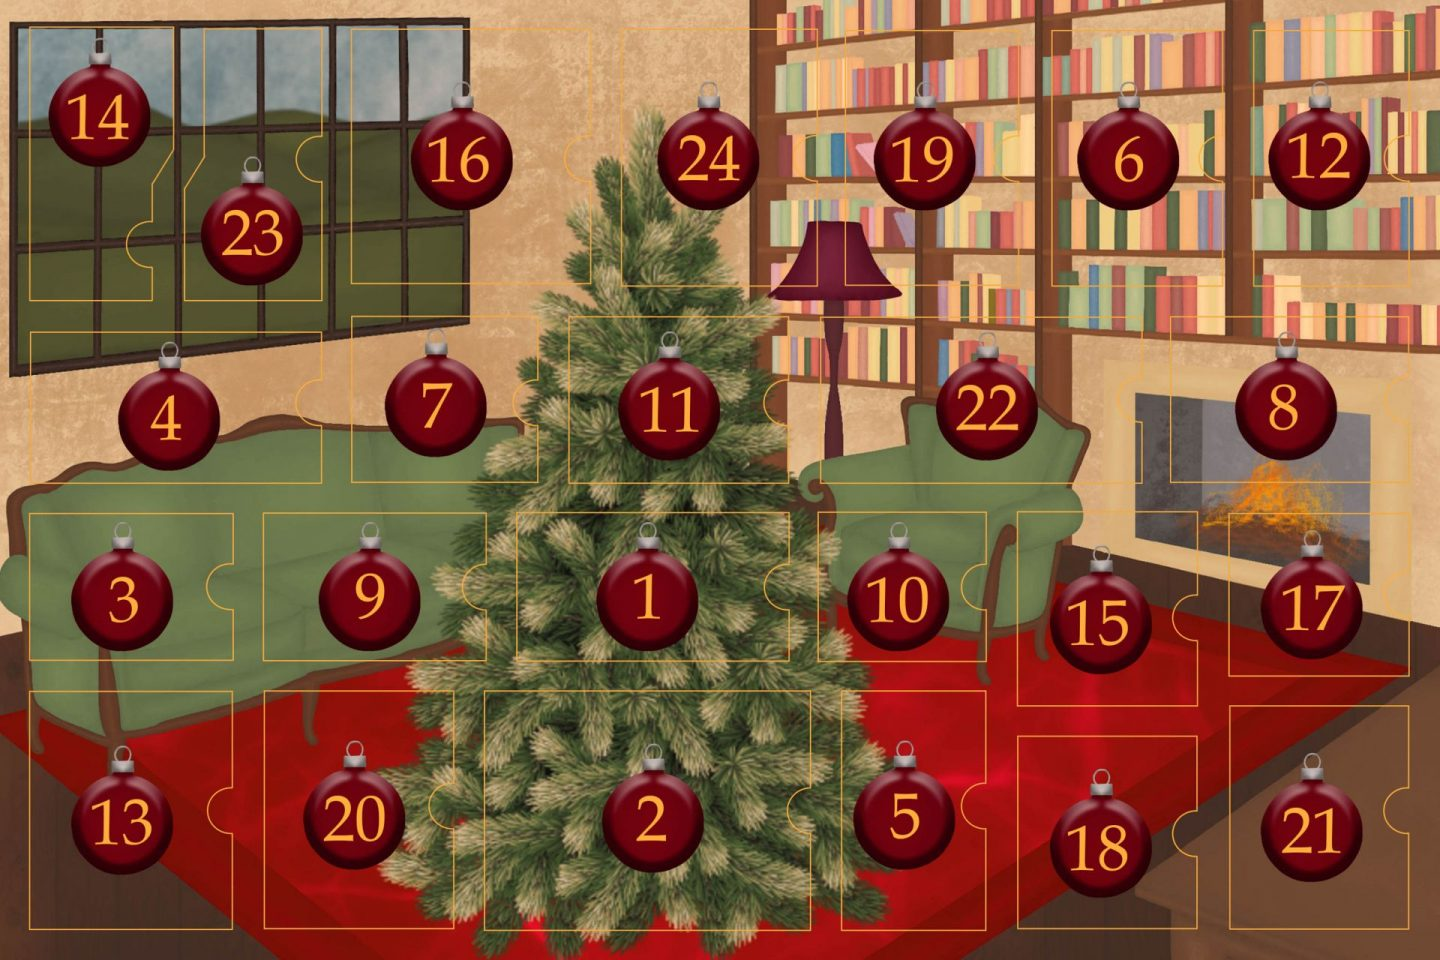 Drawing of a living room with brown wood flour, a red rug, big windows on the left and a chimney with shelves on the right wall with a big Christmas tree in the middle. All divided in 24 advent calendar sections.